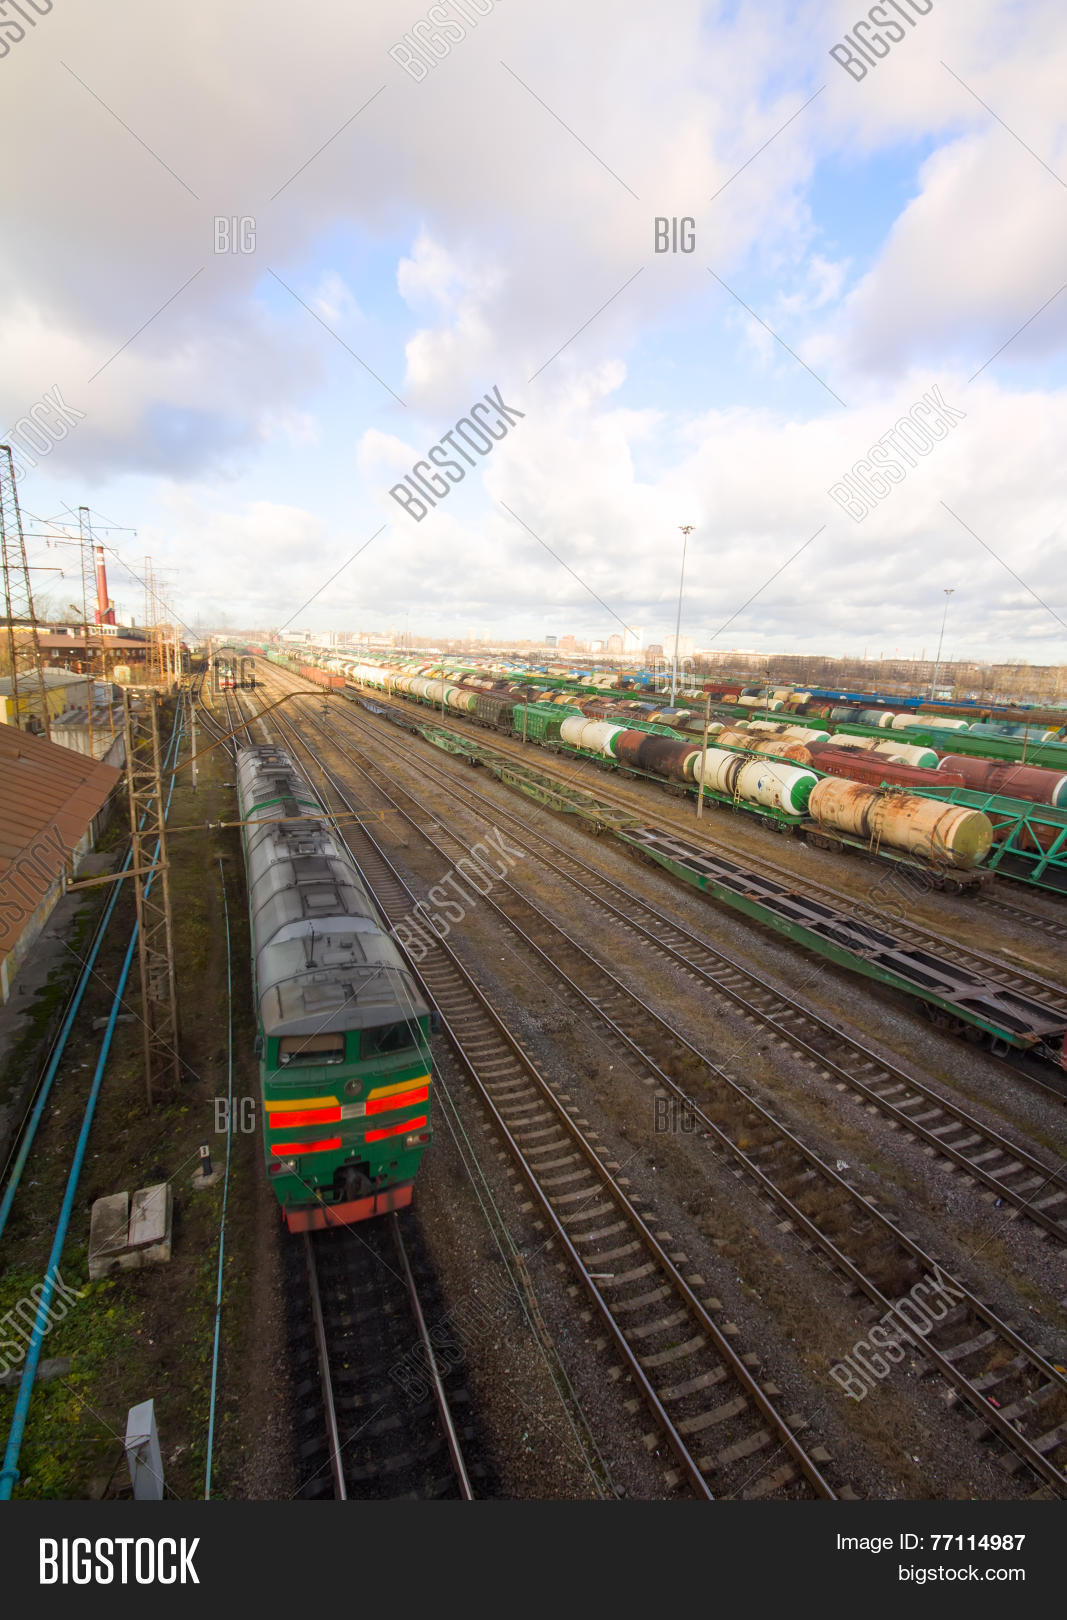 Freight Train Color Image Photo Free Trial Bigstock